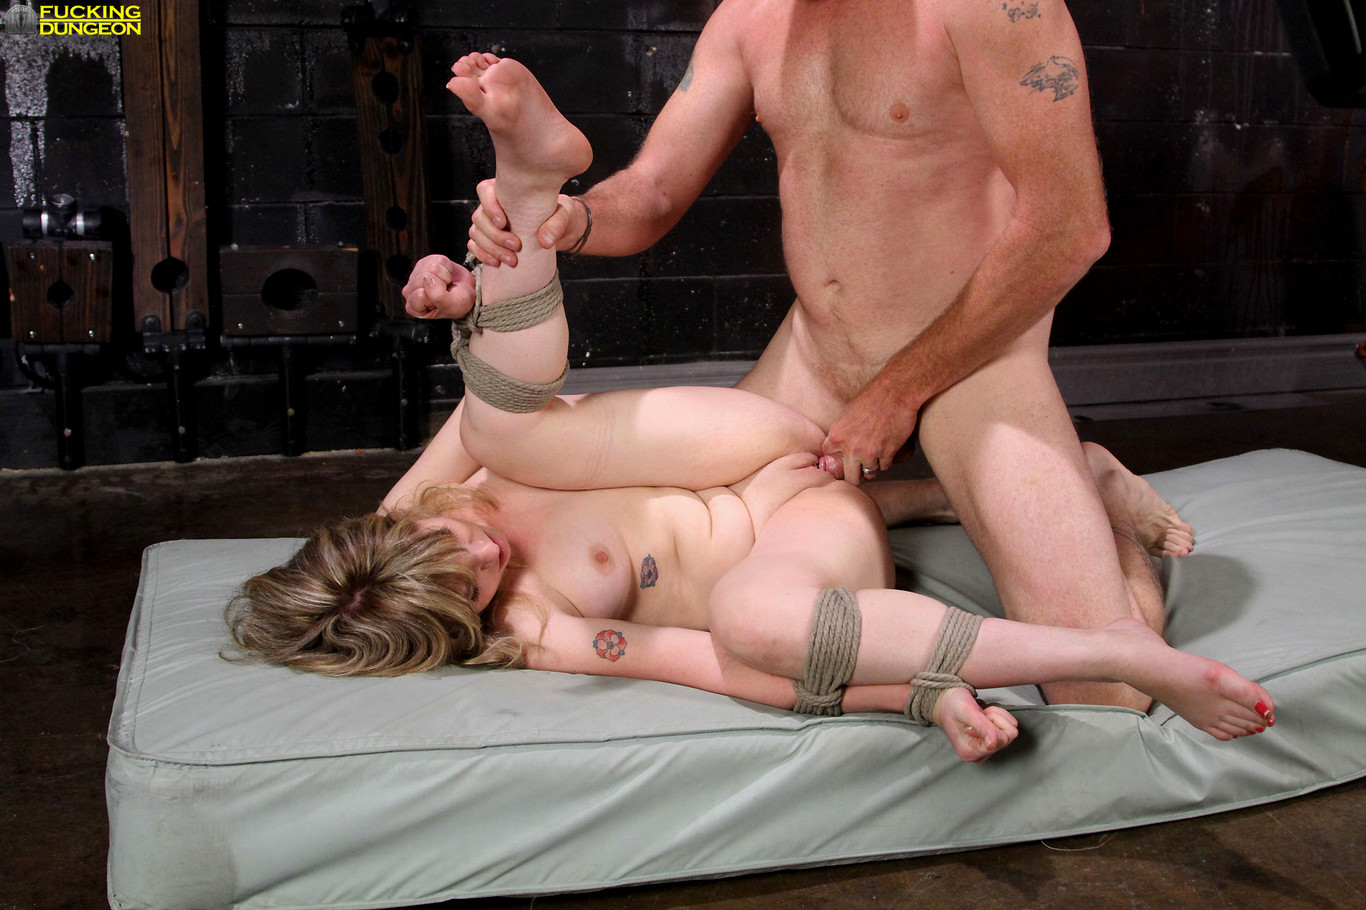 dungeon-fuck-cowgirls-tits-naked